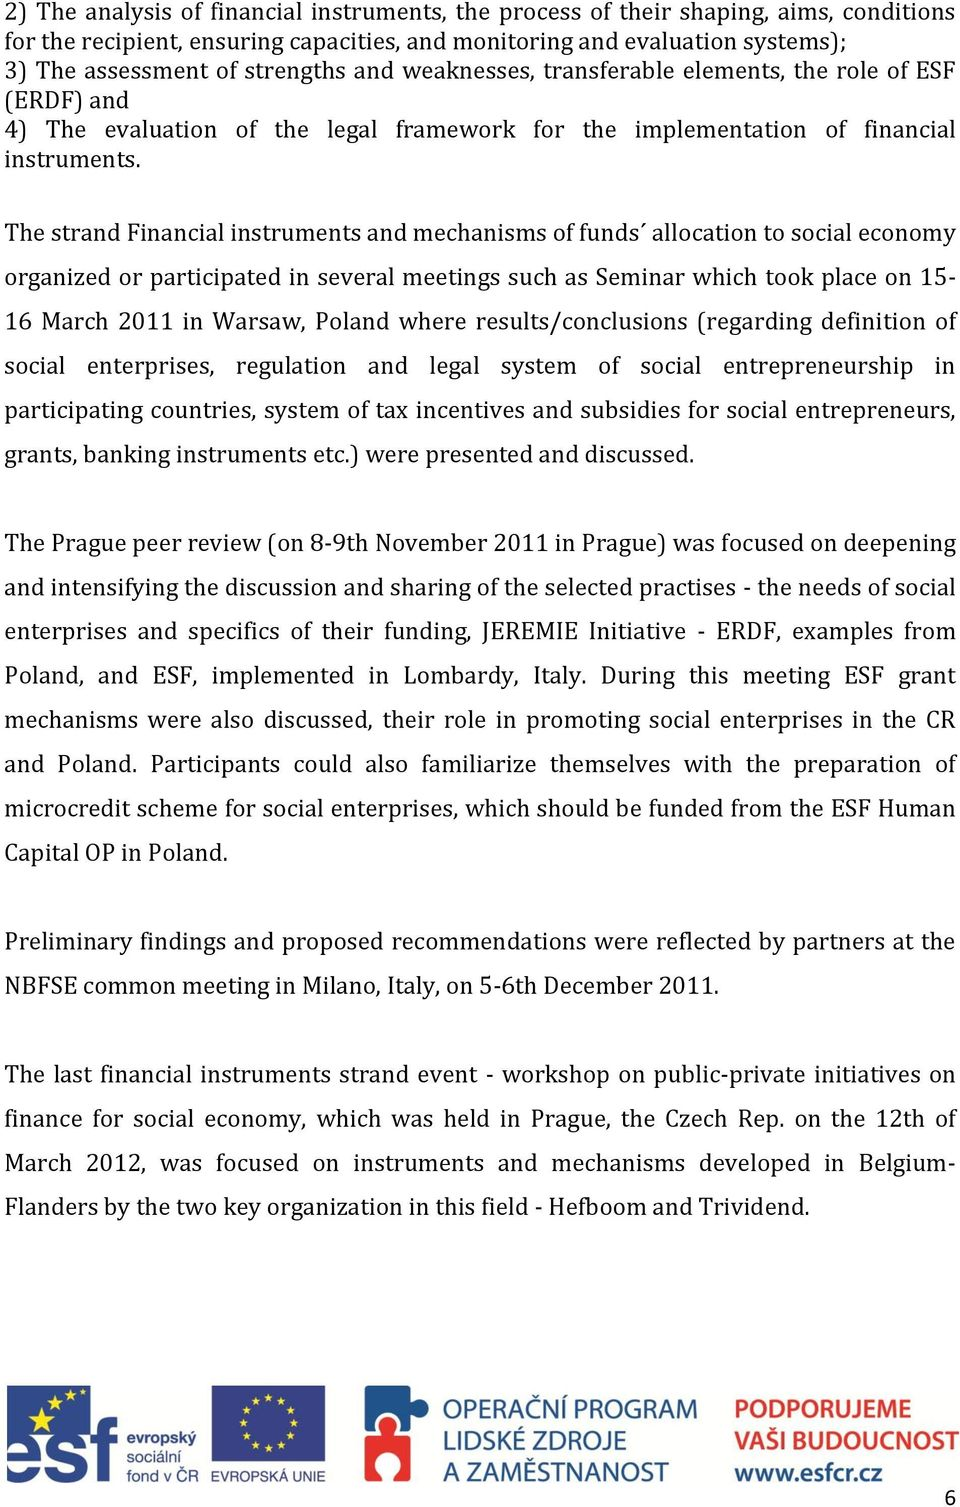 The strand Financial instruments and s of funds allocation to social economy organized or participated in several meetings such as Seminar which took place on 15-16 March 2011 in Warsaw, Poland where